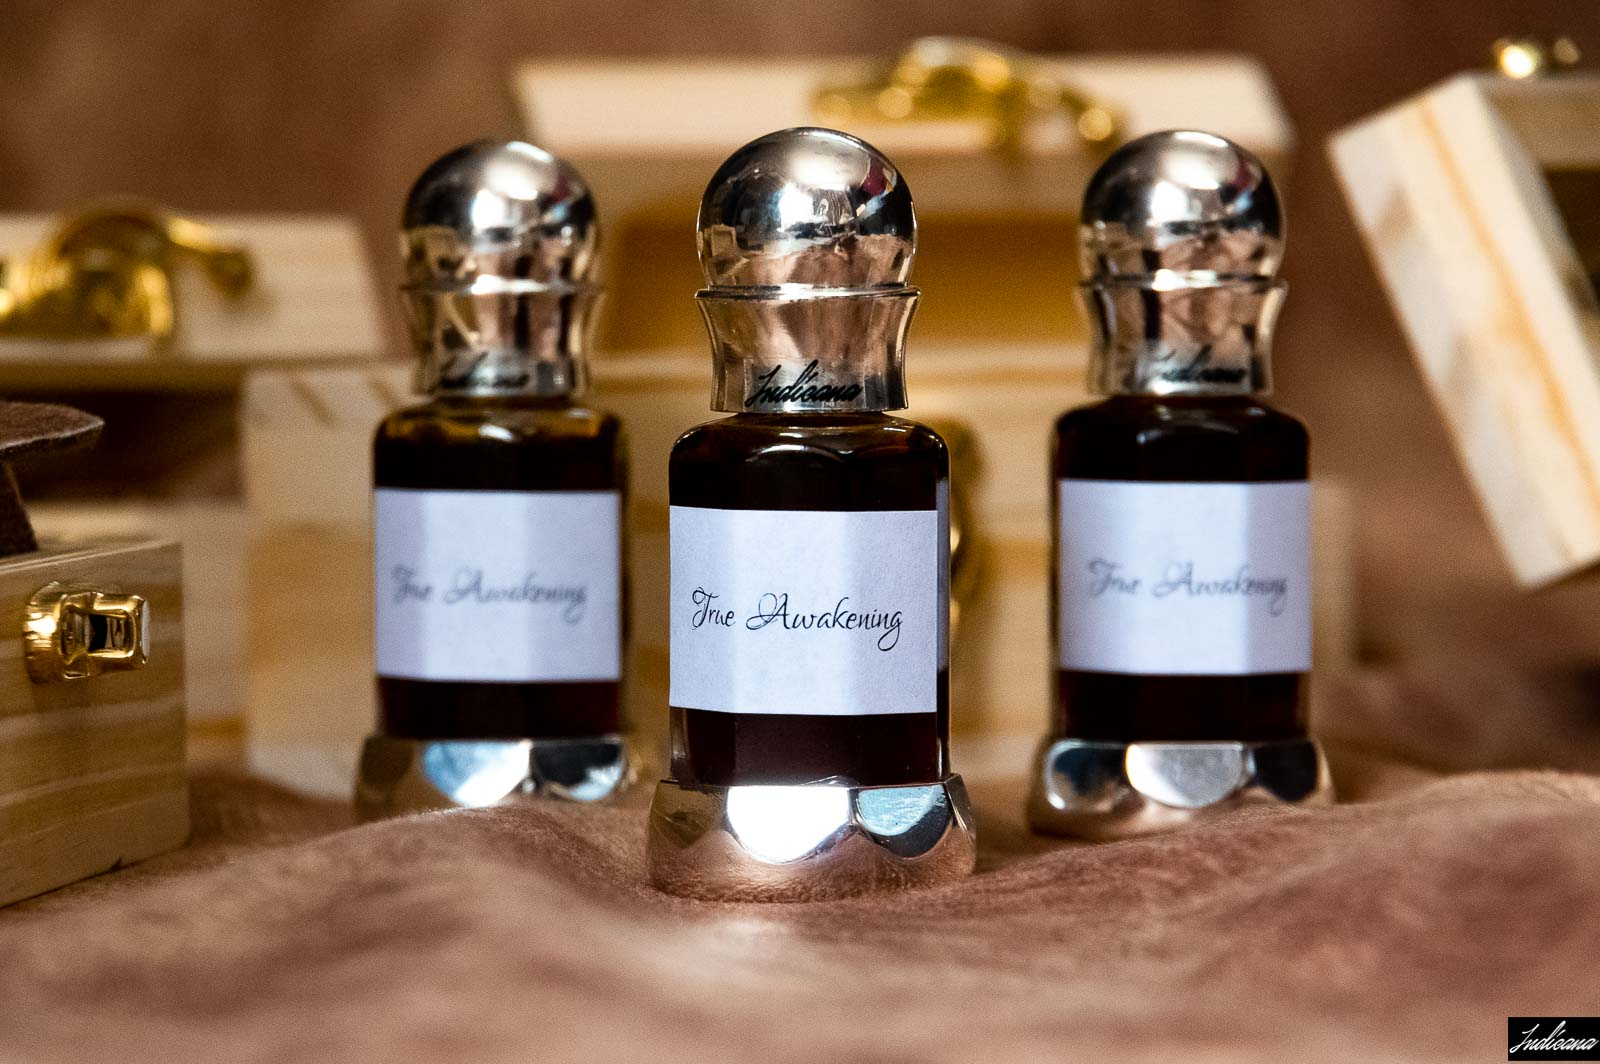 Indicana Oud Oils from India for Aramco and Royal Family Gifted by Reliance Industries